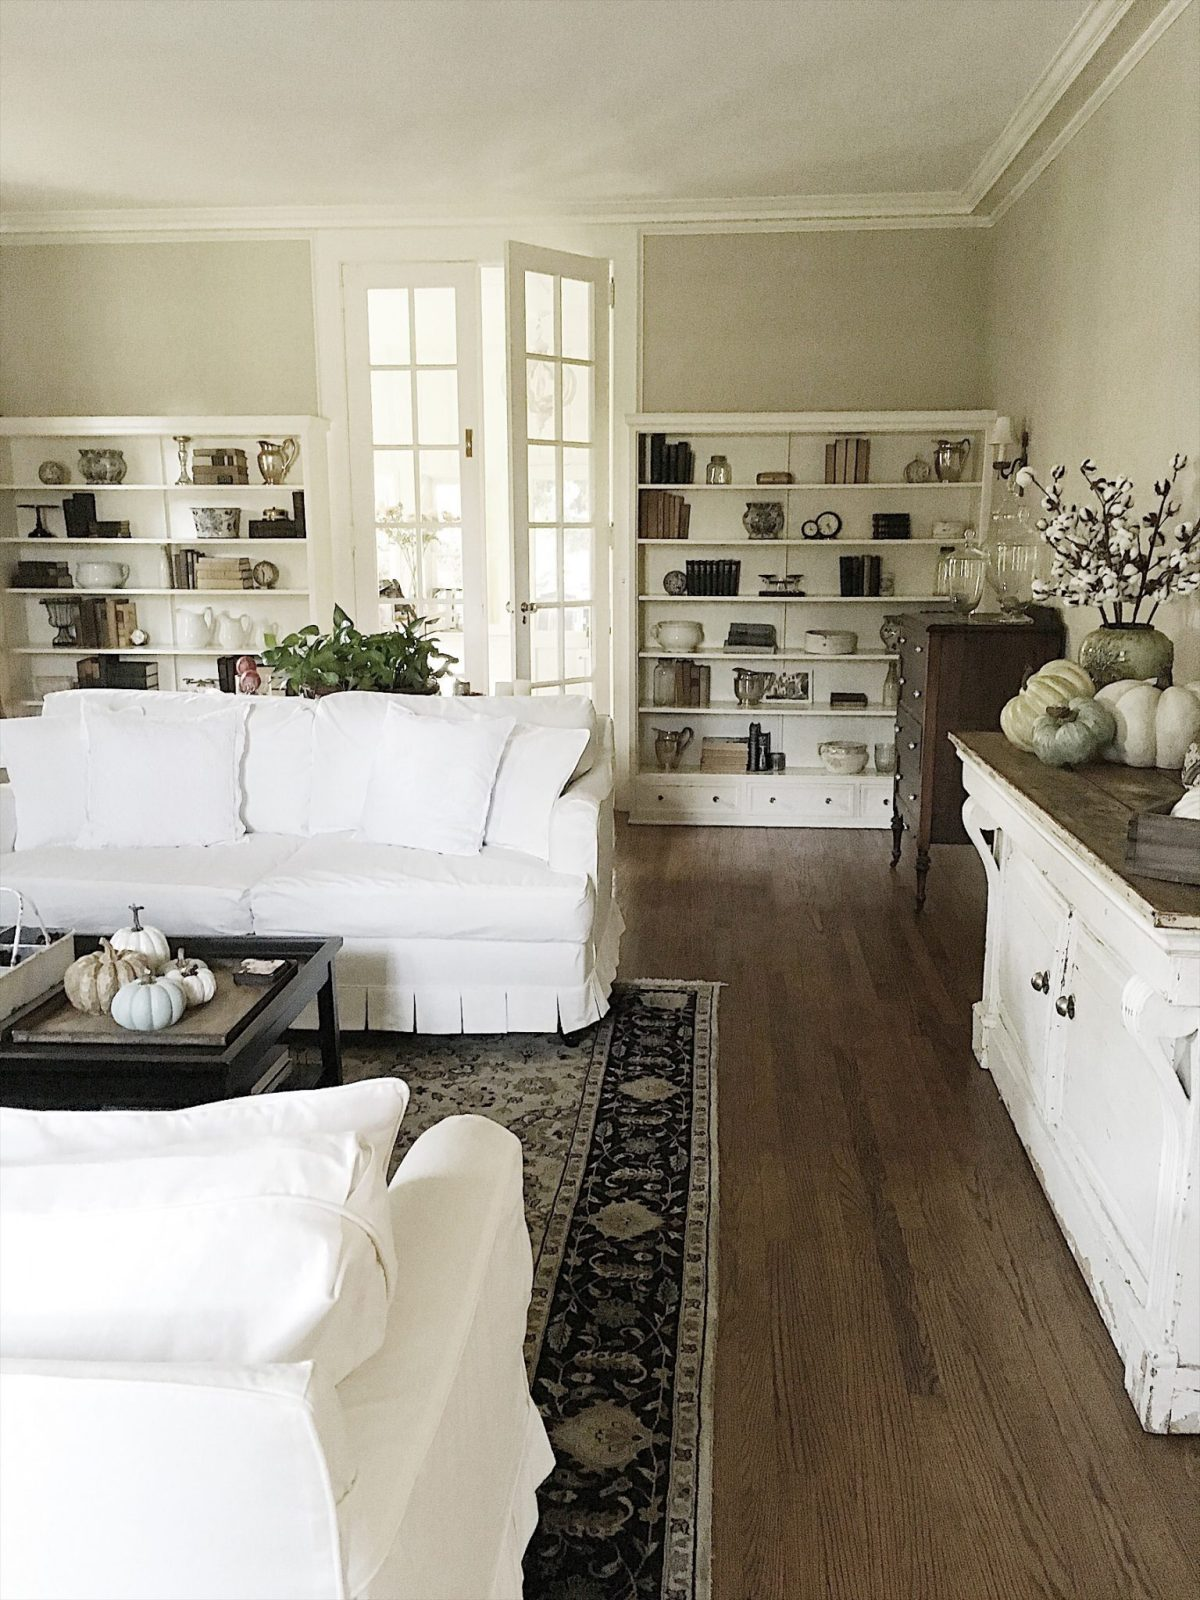 Restyling My Living Room Bookcases. Ff304862 B7f7 4380 8fac 56dcd0c8e434